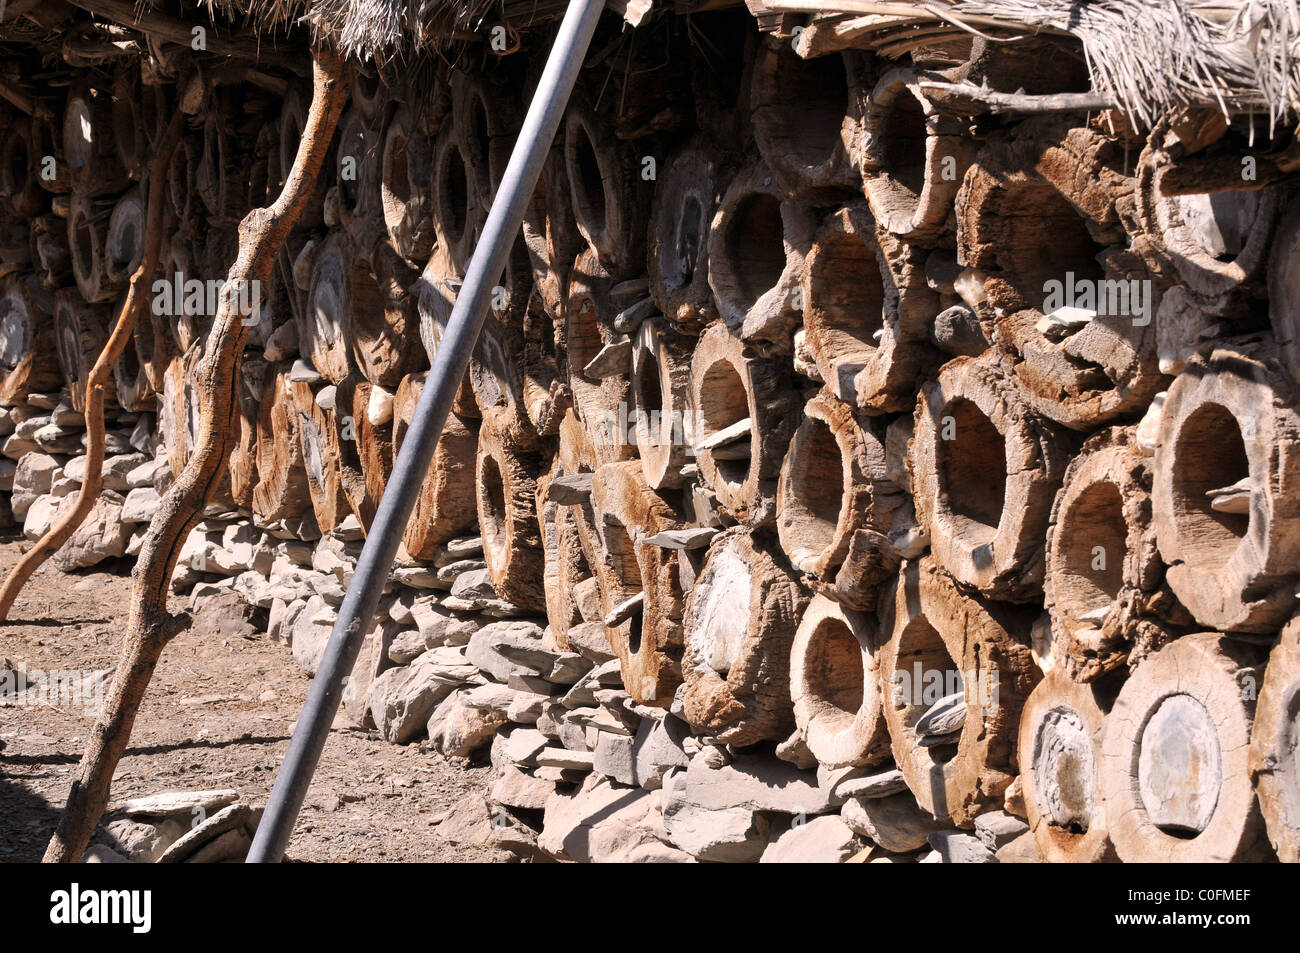 Bee hives. The Sultanate of Oman. - Stock Image